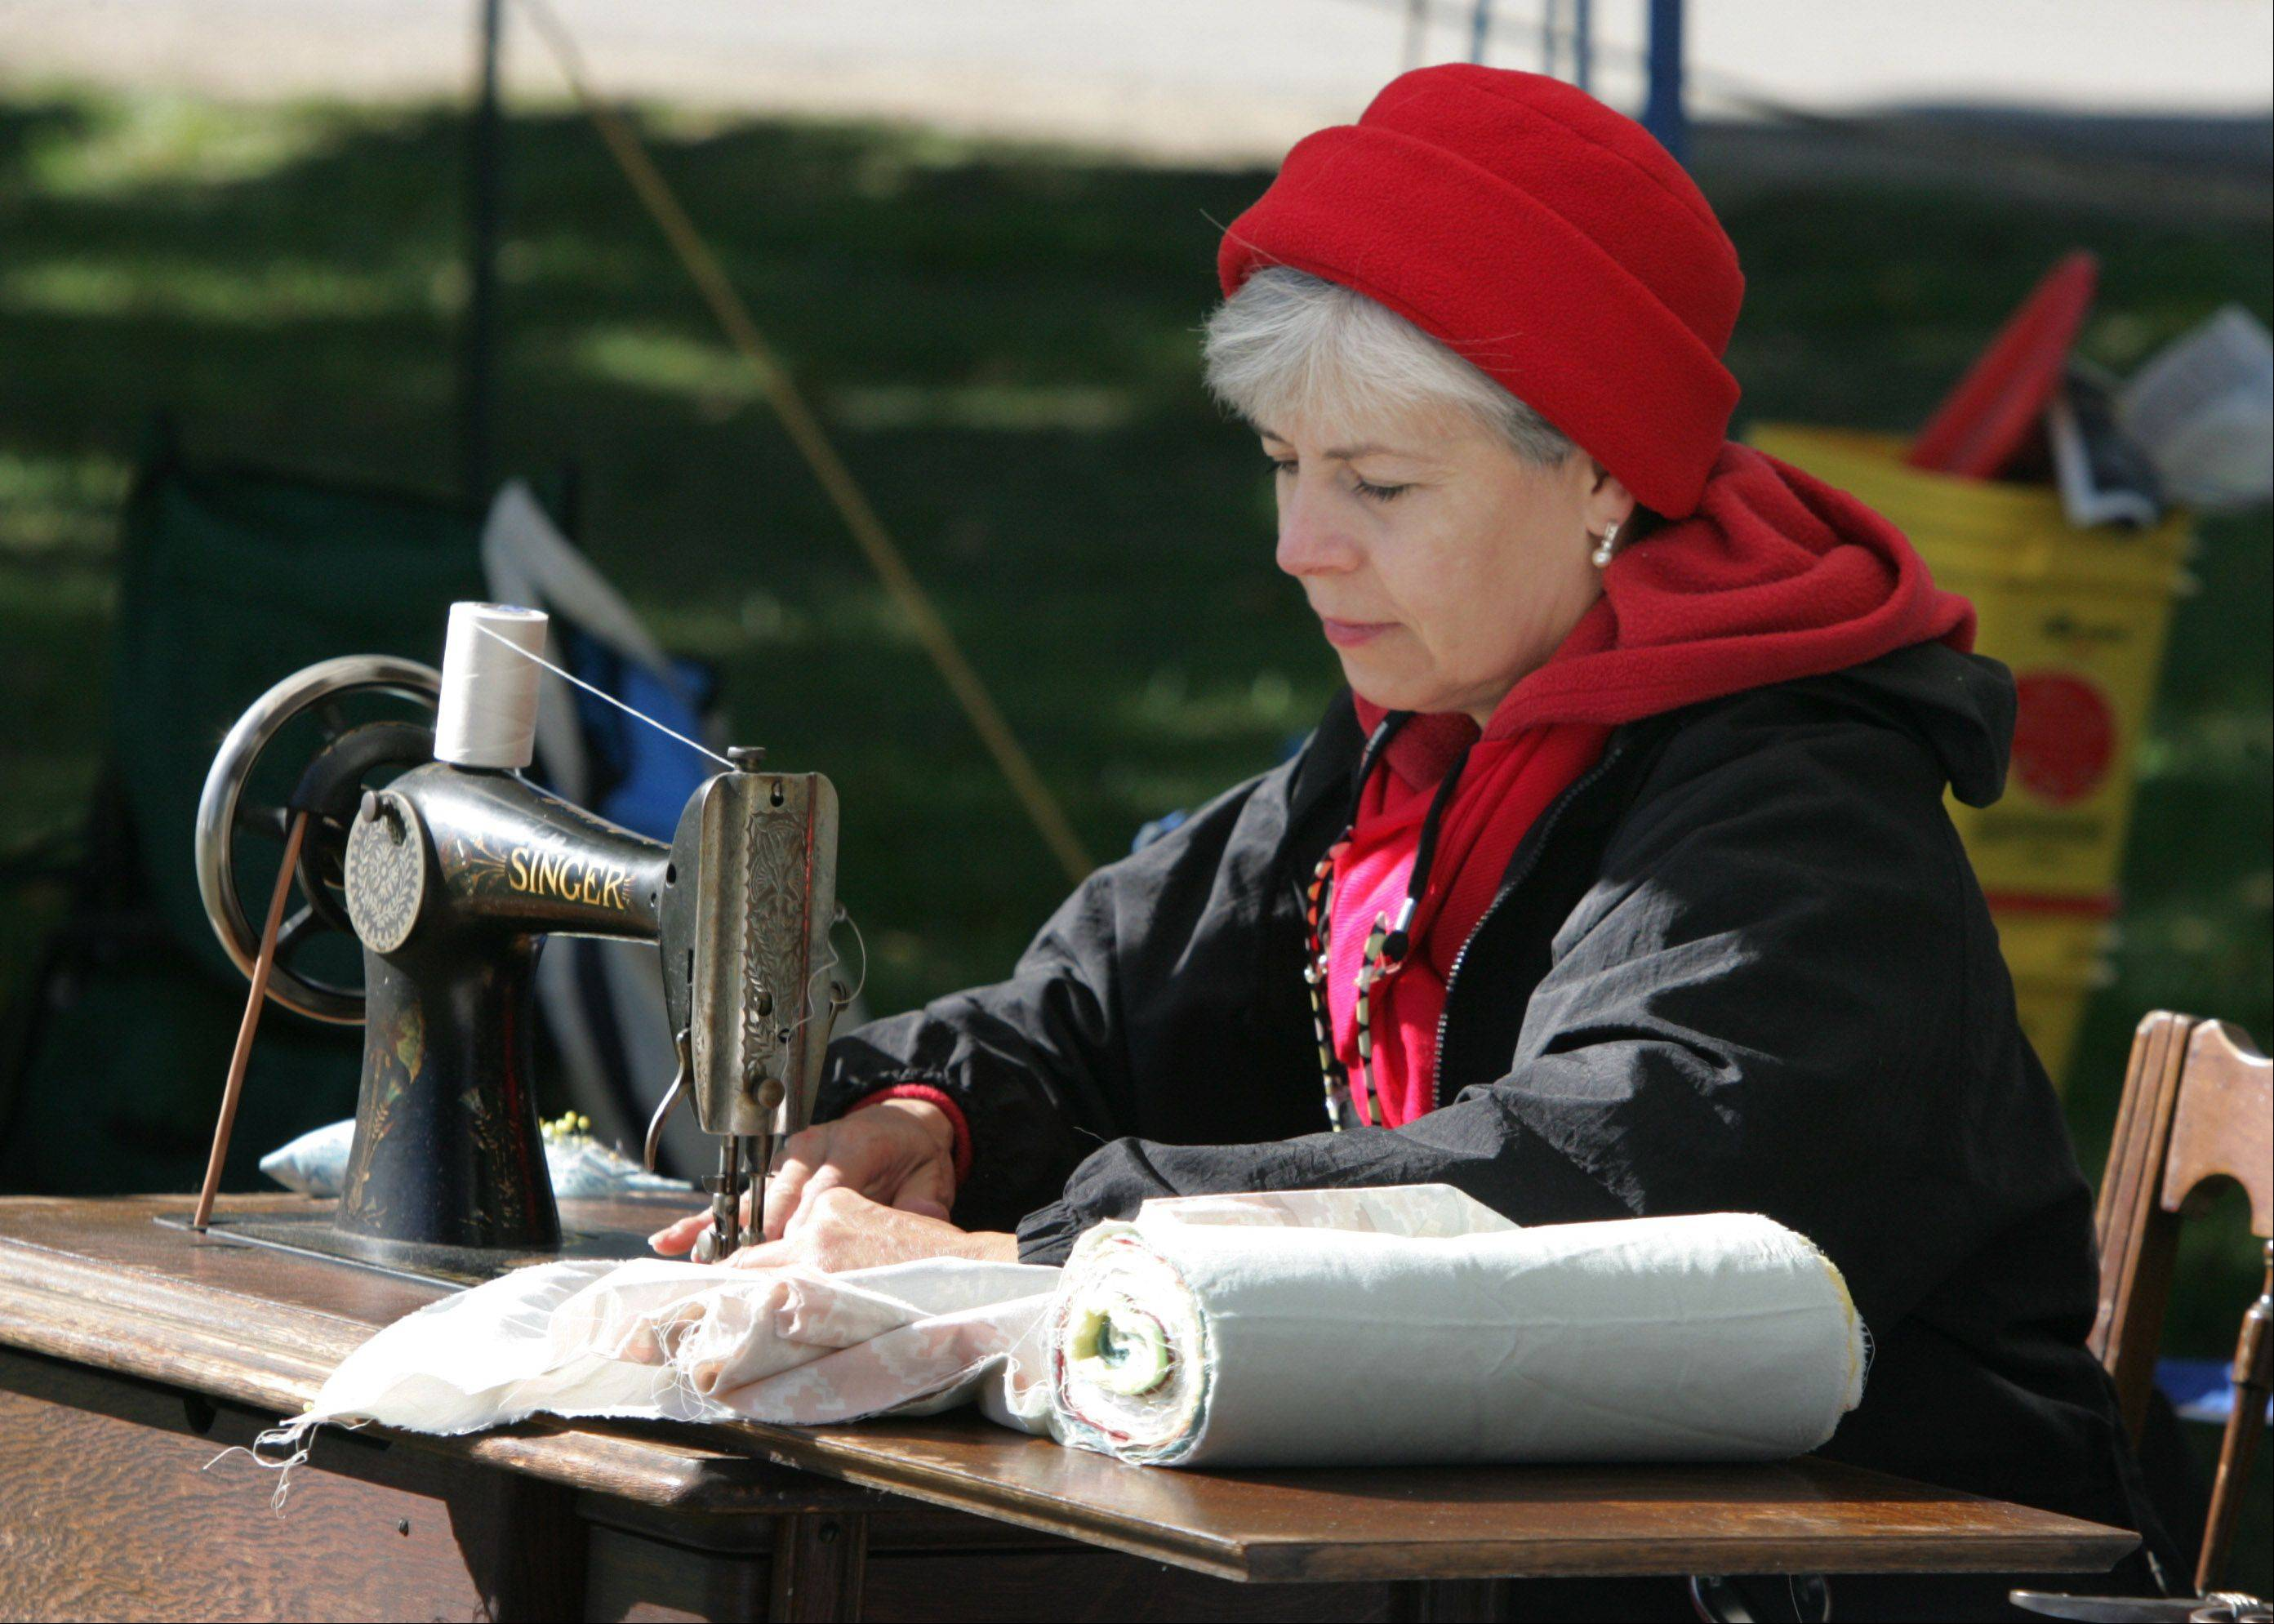 Trudi Handzel, of Palatine, uses a 1905 Singer sewing machine to sew a quilt top during the 20th Annual Farm Heritage Festival Sunday at Lakewood Forest Preserve near Wauconda. The event was co-sponsored by the Lake County Discovery Museum and the Lake County Farm Heritage Association.